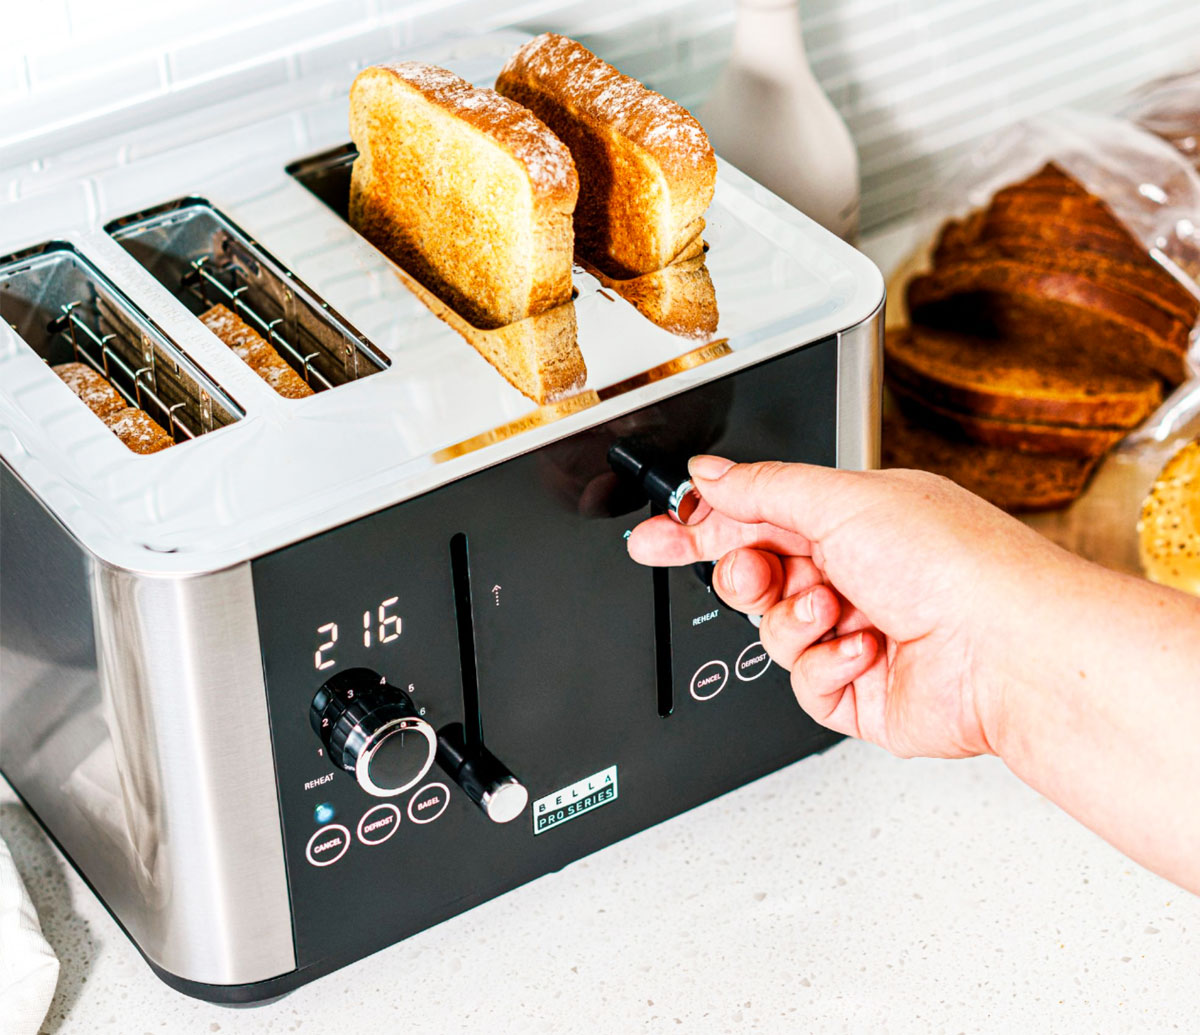 person grabbing toast from toaster